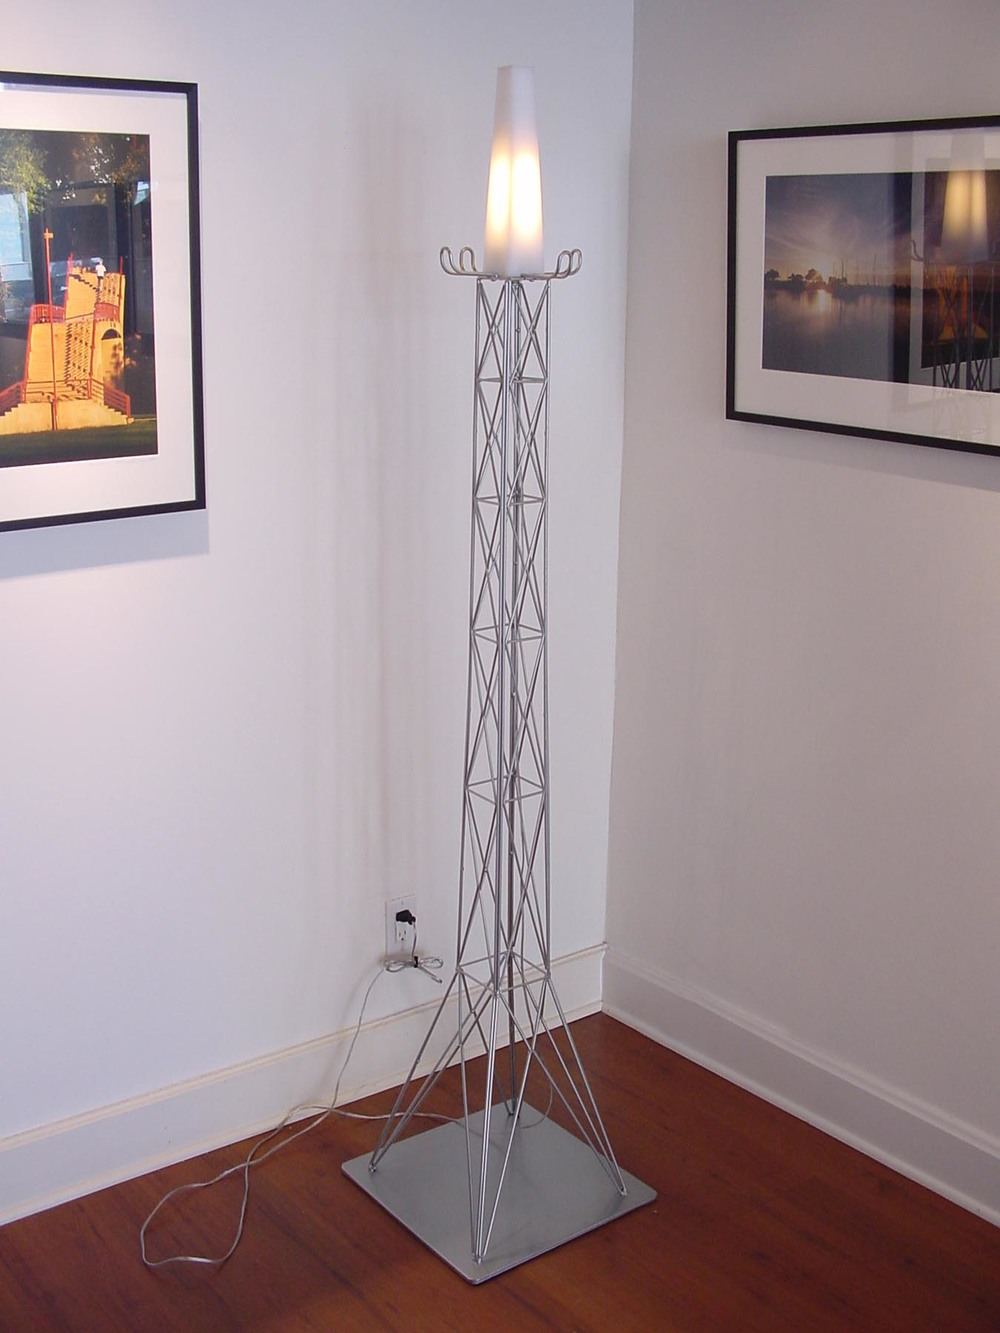 oil rig floor lamp.jpg